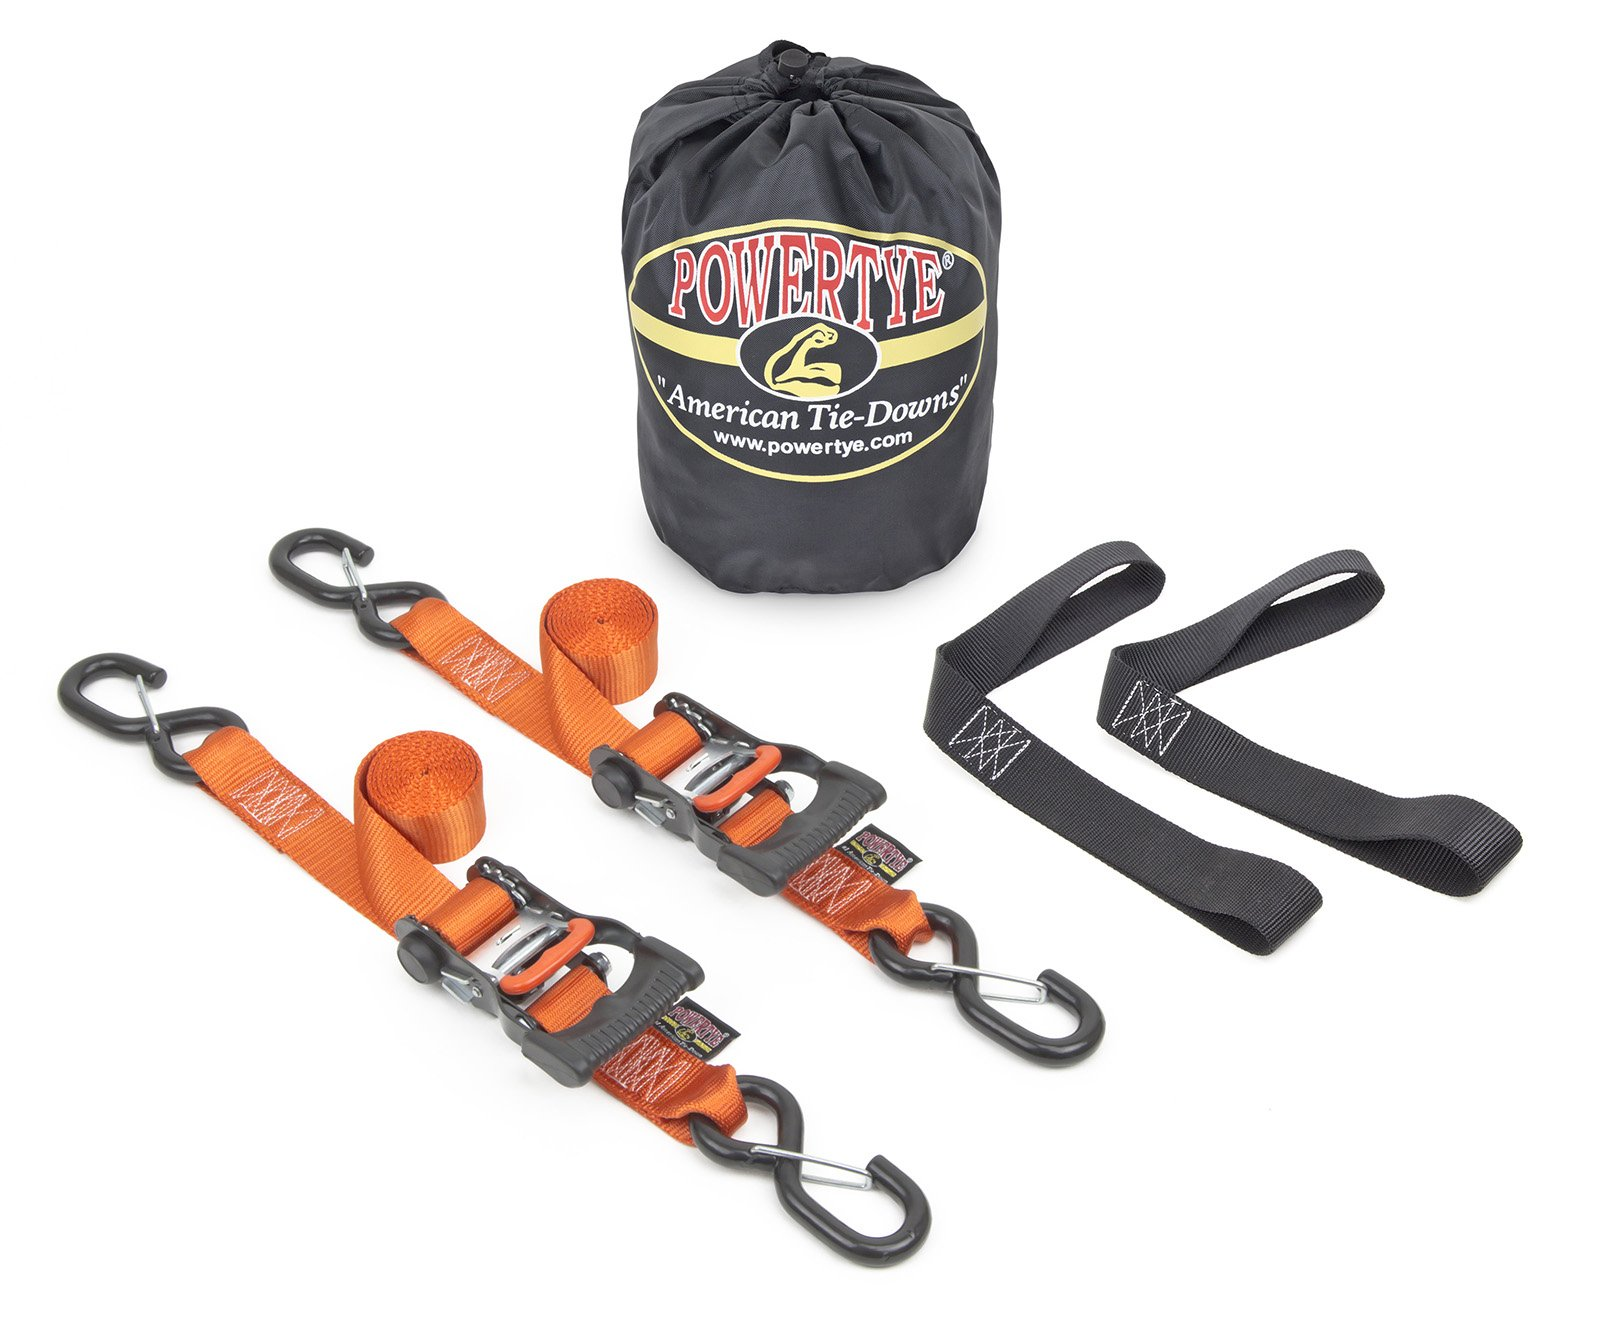 1½'' x 6ft PowerTye Made in USA Ergonomic Ratchet Tie-Down Kit with 1½''x18'' Soft-Tyes and Storage Bag, Orange (Pair)